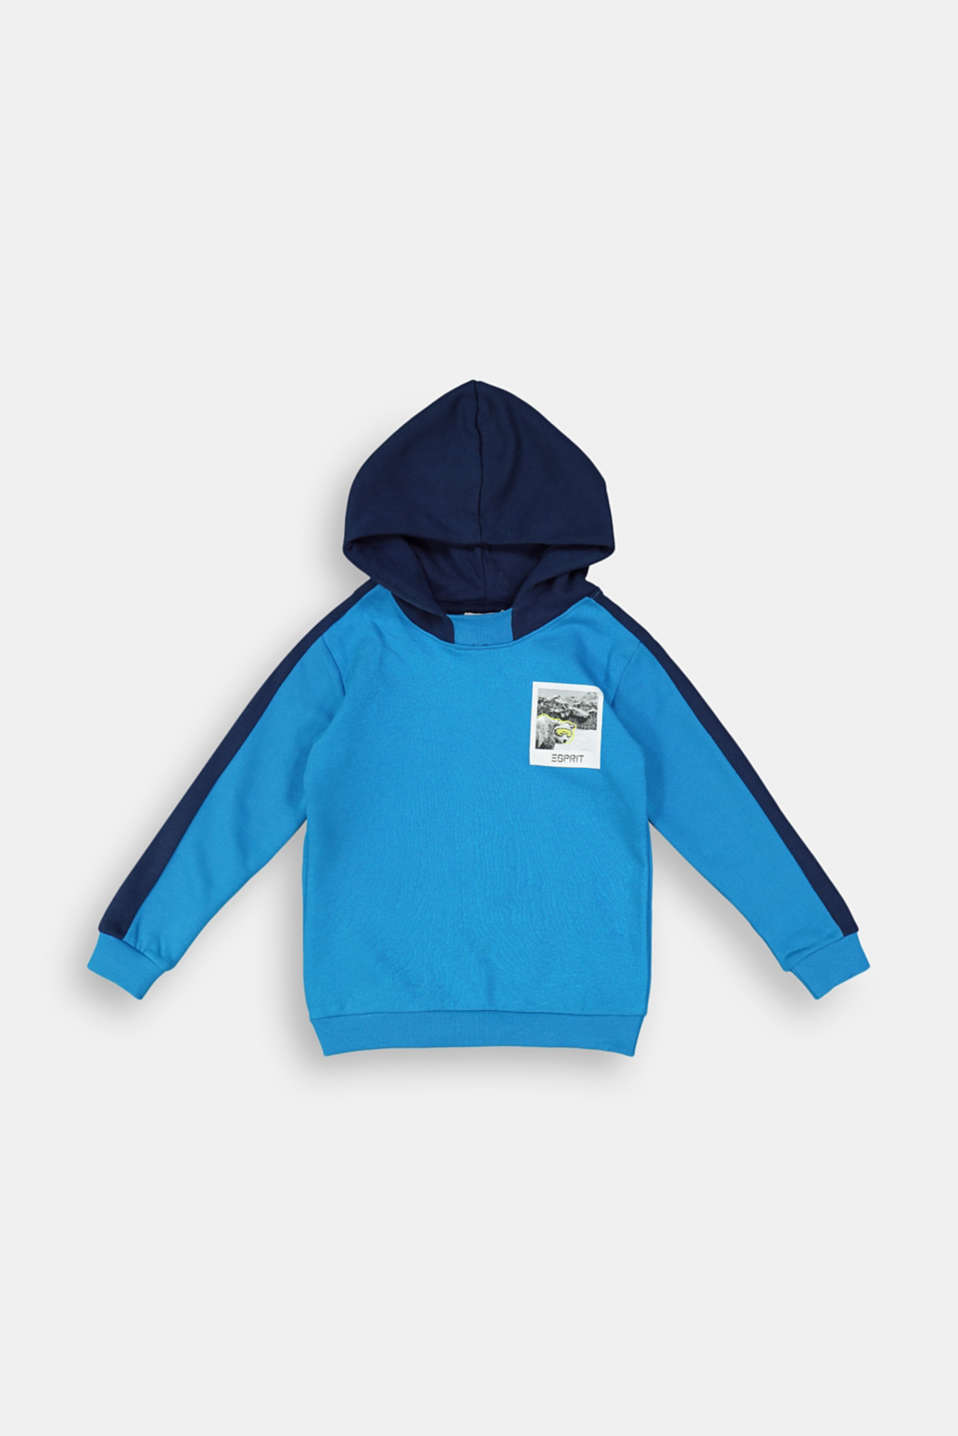 Esprit - Sweatshirt hoodie in 100% cotton